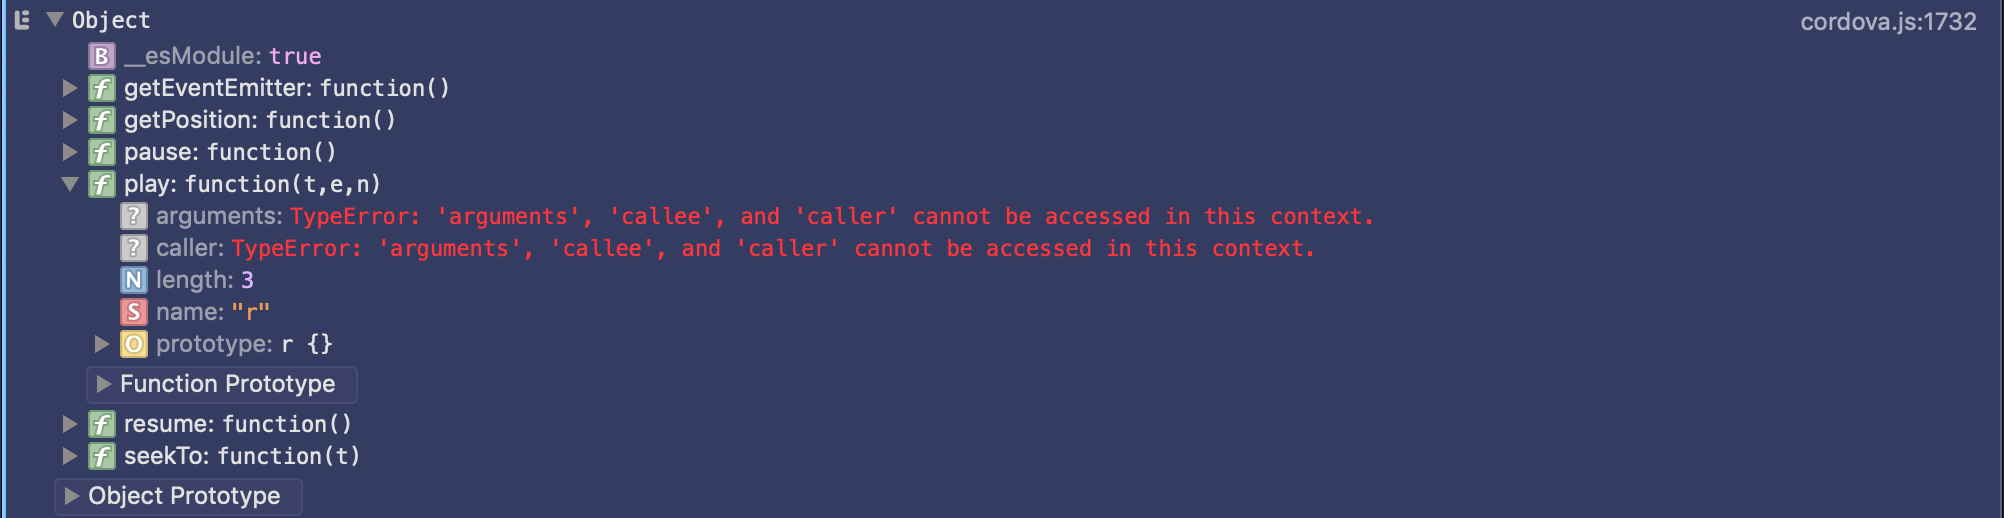 TypeError: 'arguments', 'callee', and 'caller' cannot be